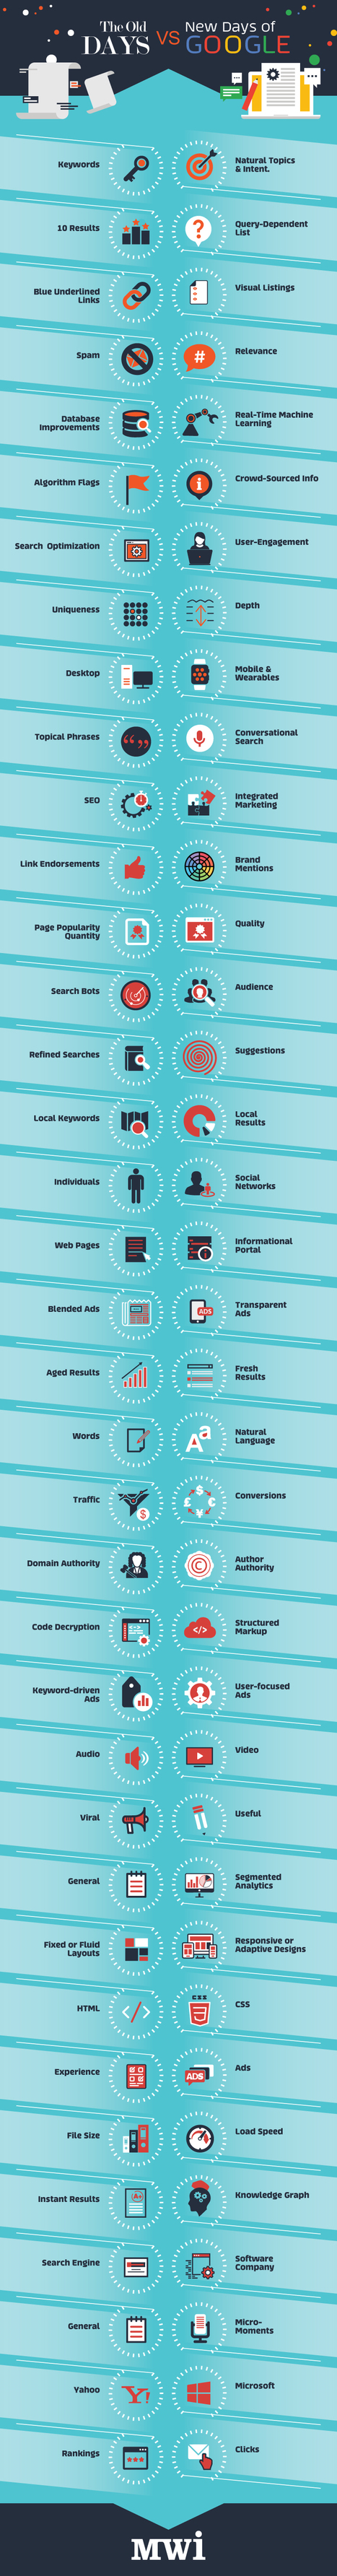 The Old Days VS New Days of Google [Infographic] | Transformations in Business & Tourism | Scoop.it